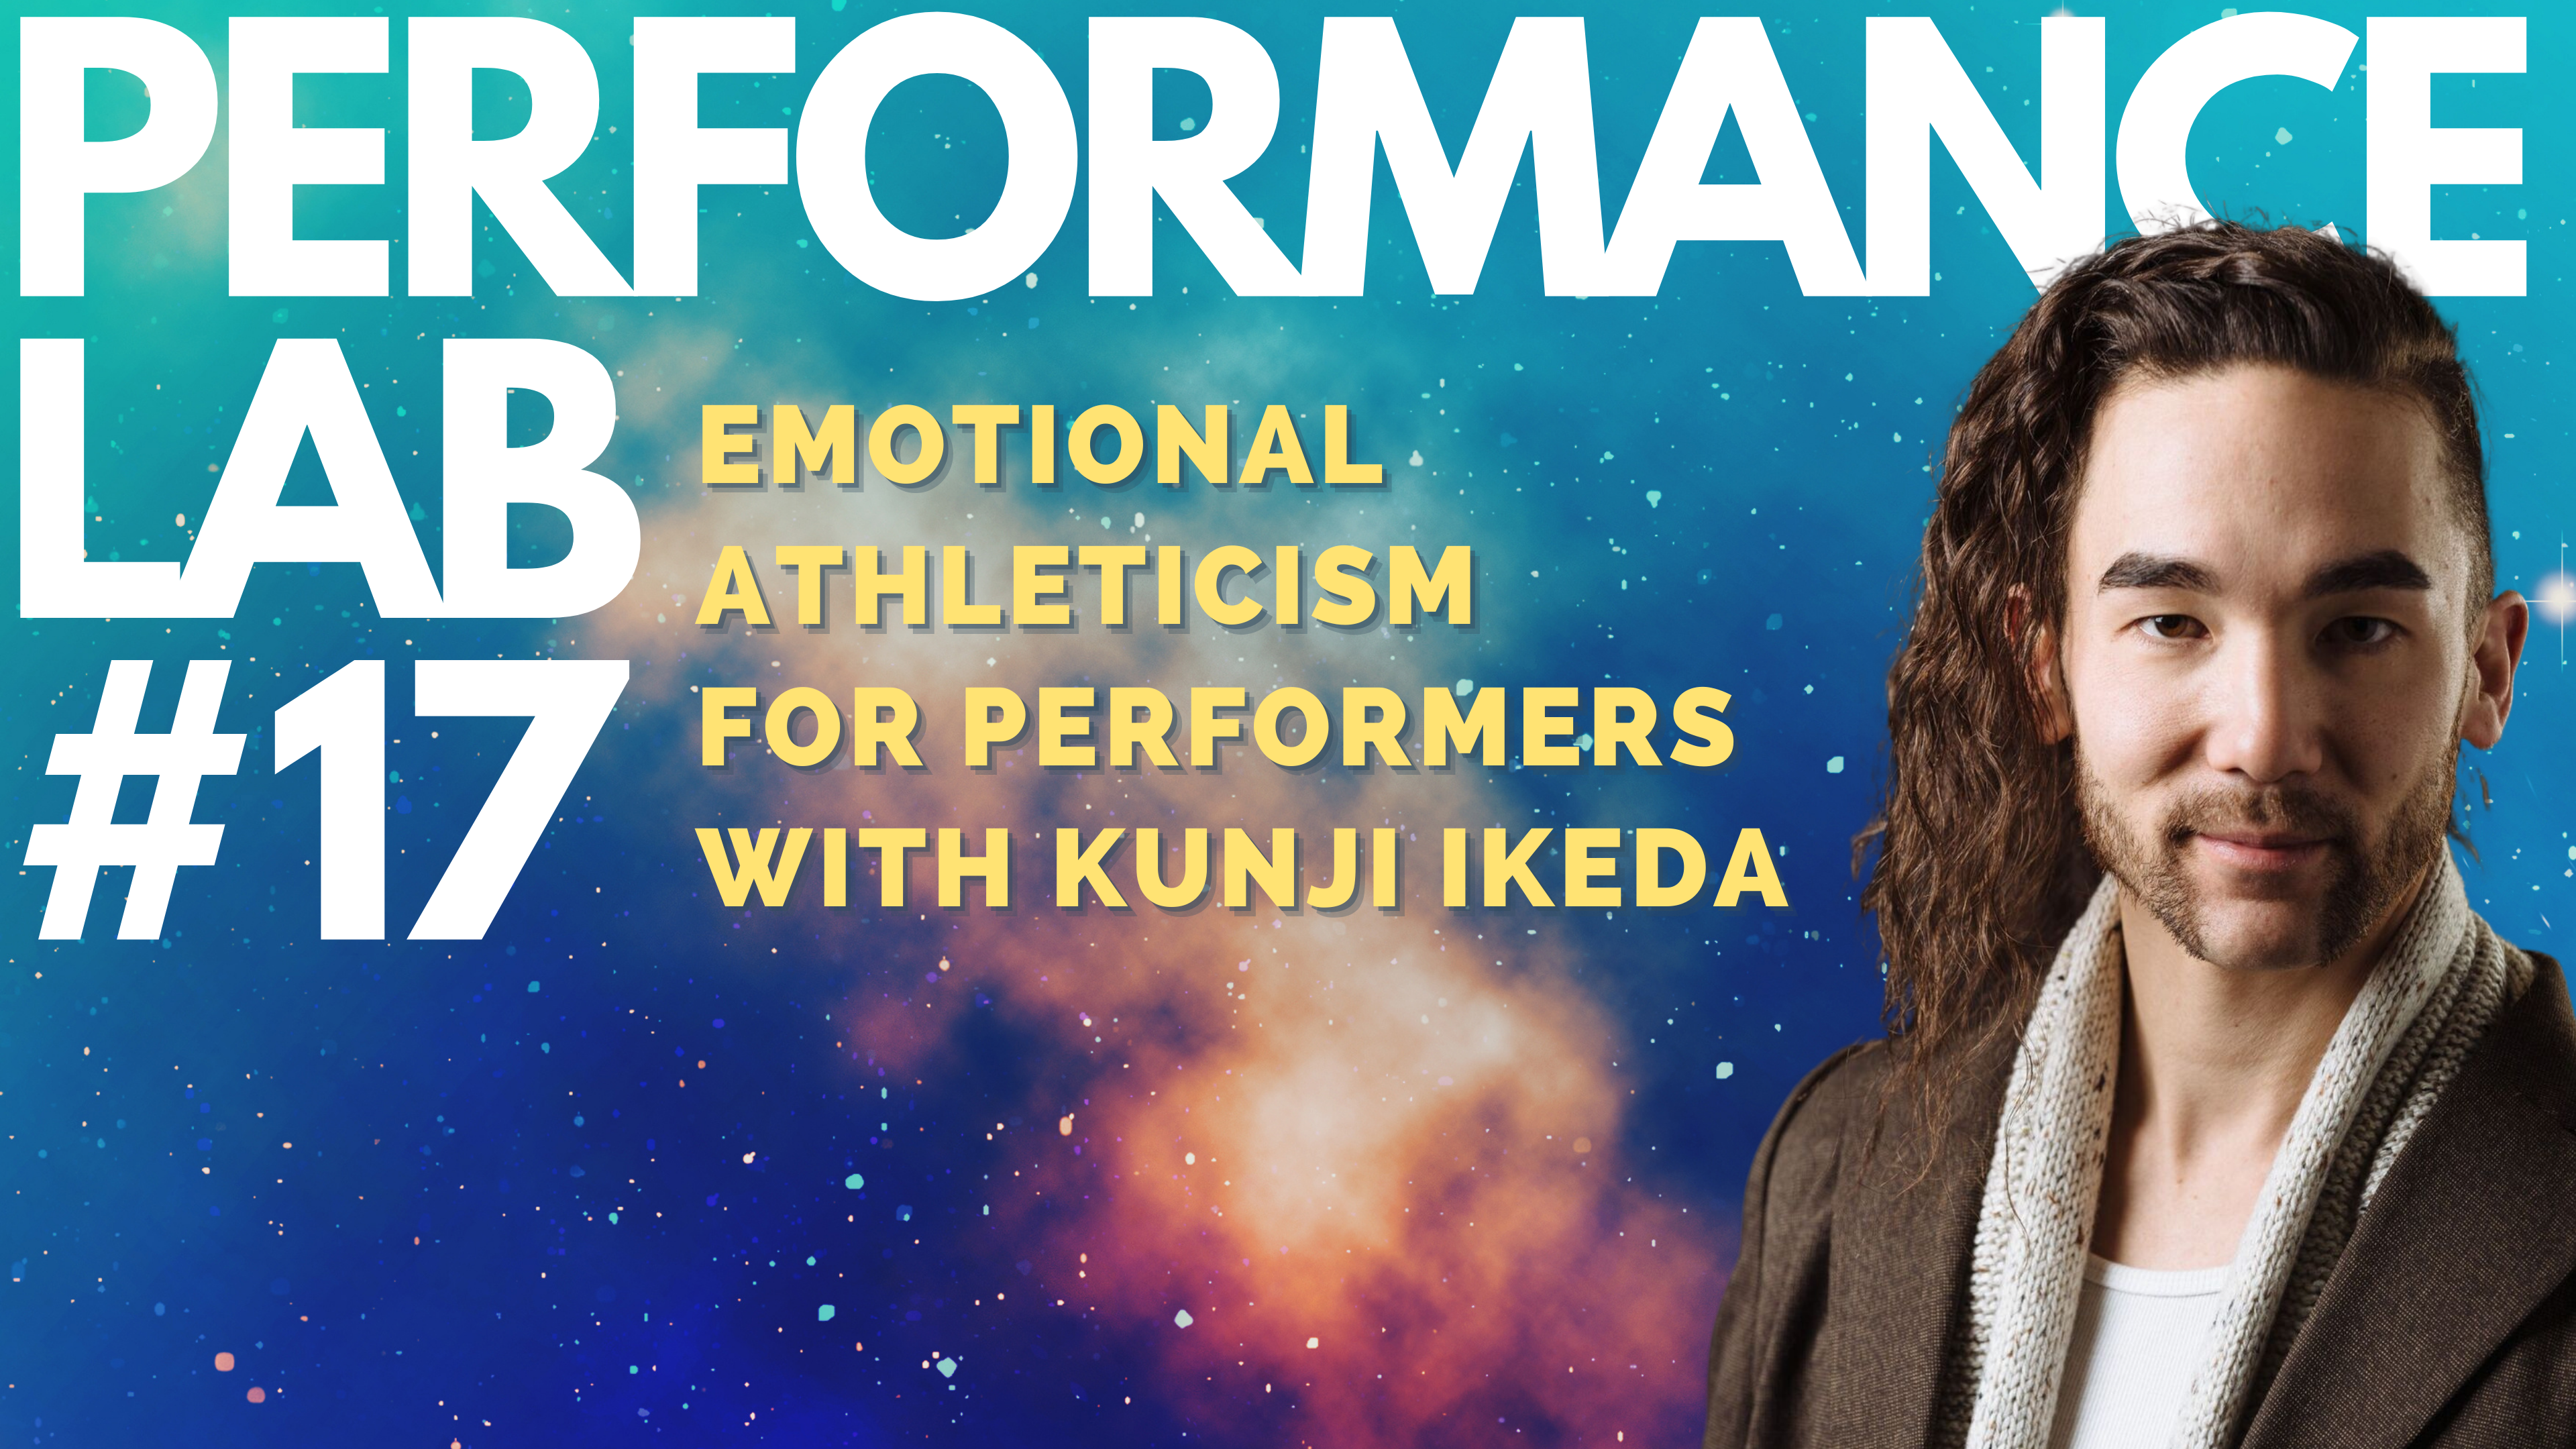 """Kunji Ikeda, with the text PERFORMANCE LAB #17. Emotional Athleticism for Performers with Kunji Ikeda, Link in Bio. Kunji and text are layered on a background of a bright blue, indigo and orange galaxy. """""""